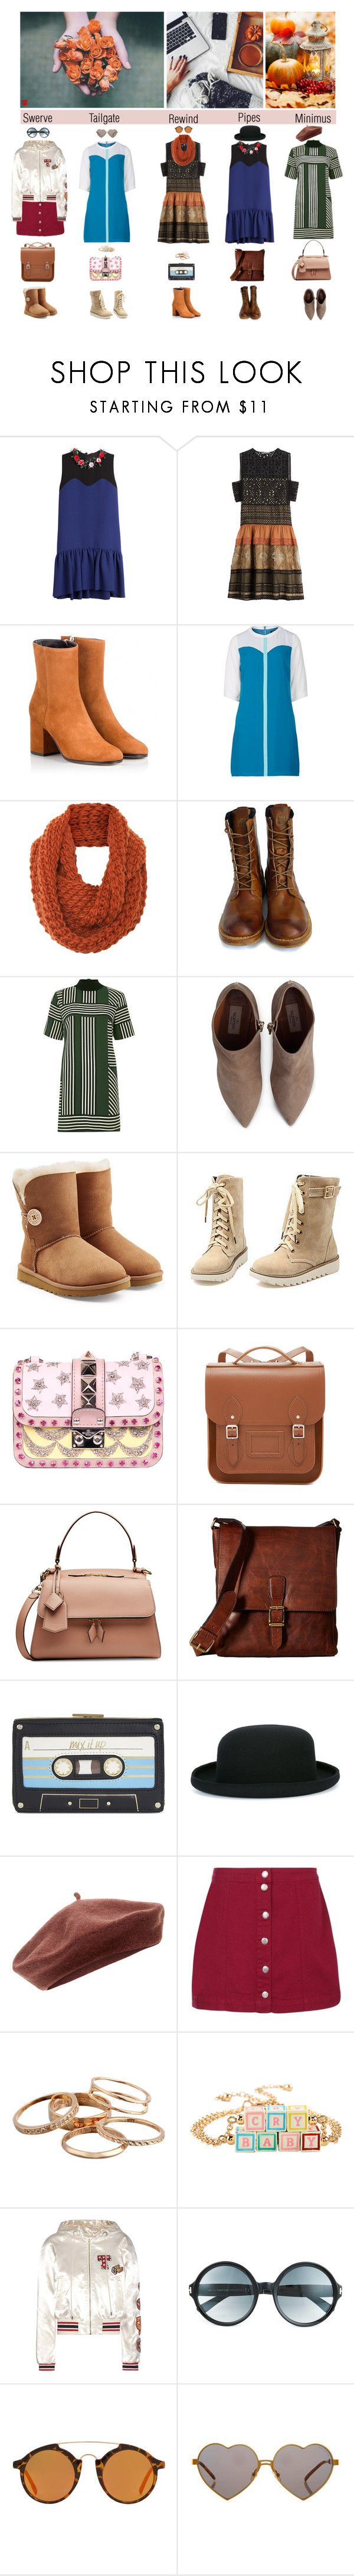 """Fall mini's"" by femme-mecha ❤ liked on Polyvore featuring MSGM, Alberta Ferretti, Fratelli Karida, Sugarhill Boutique, A